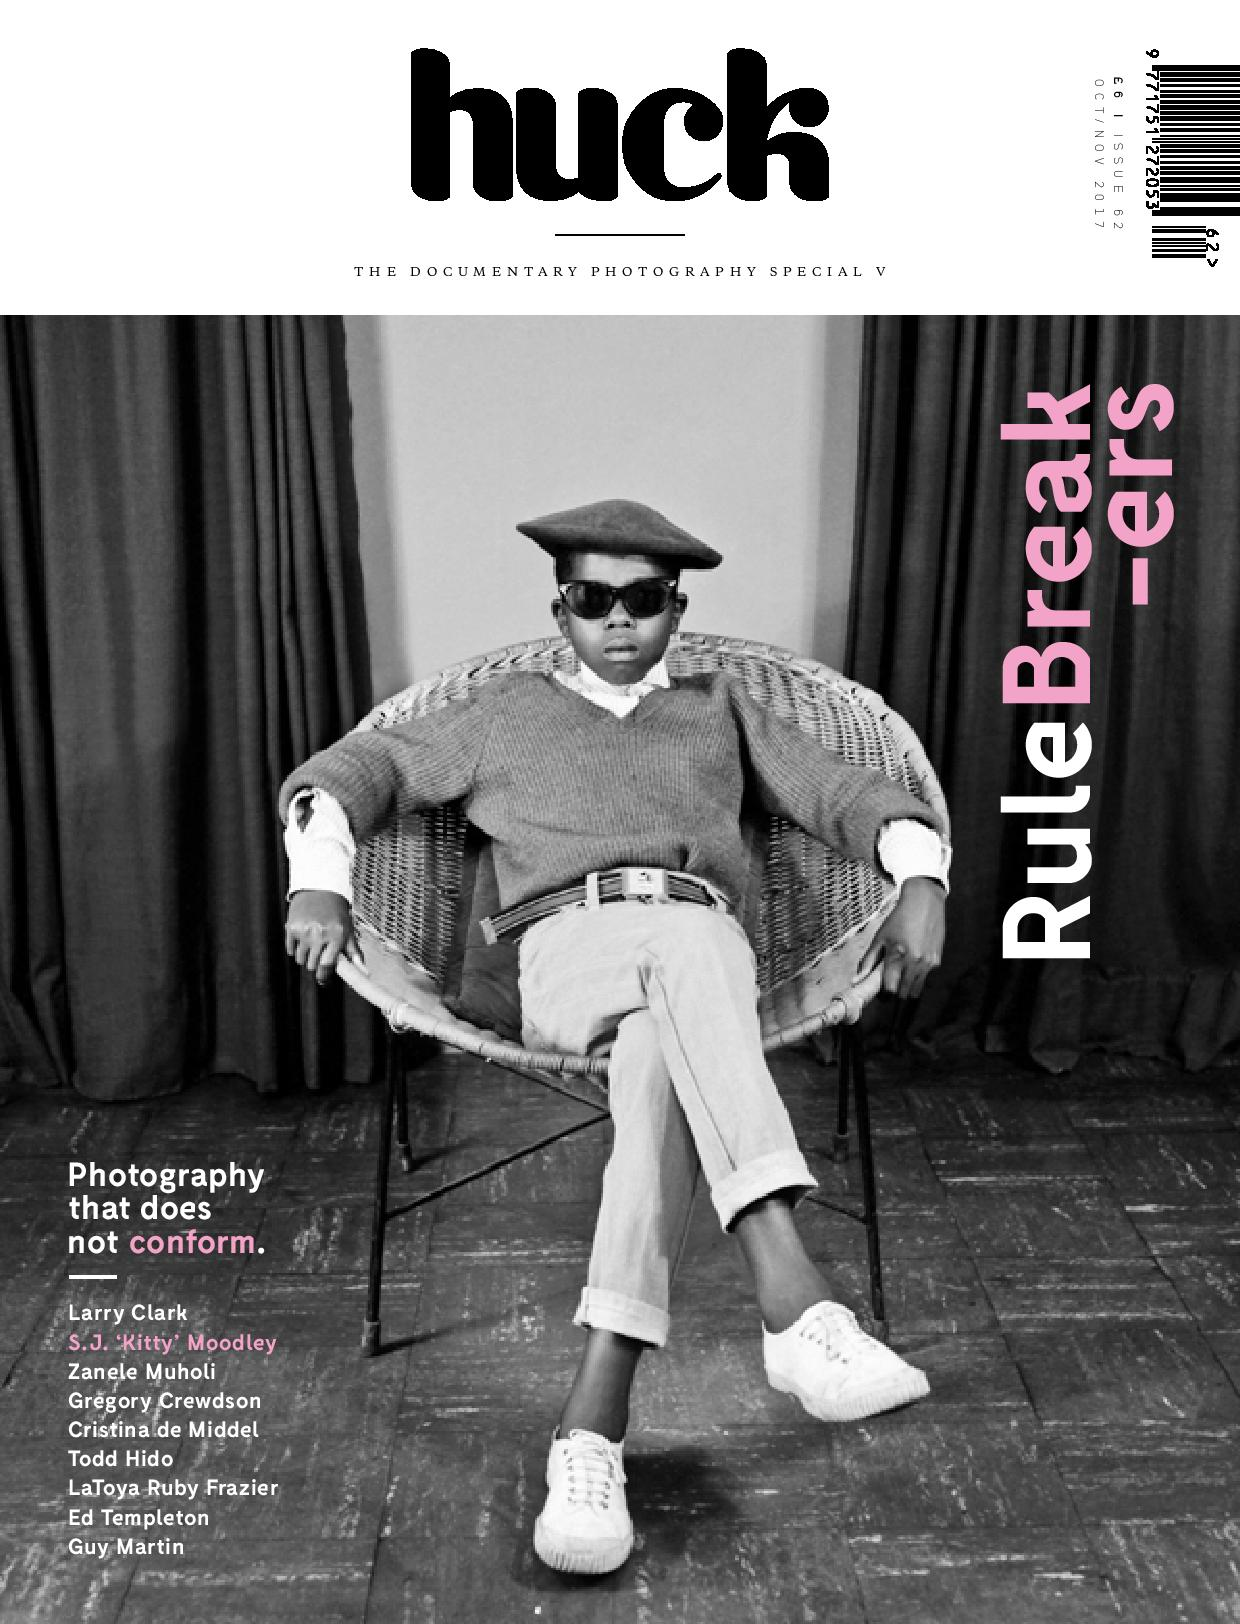 Back Issue - 62 - The Doc Photo Special V